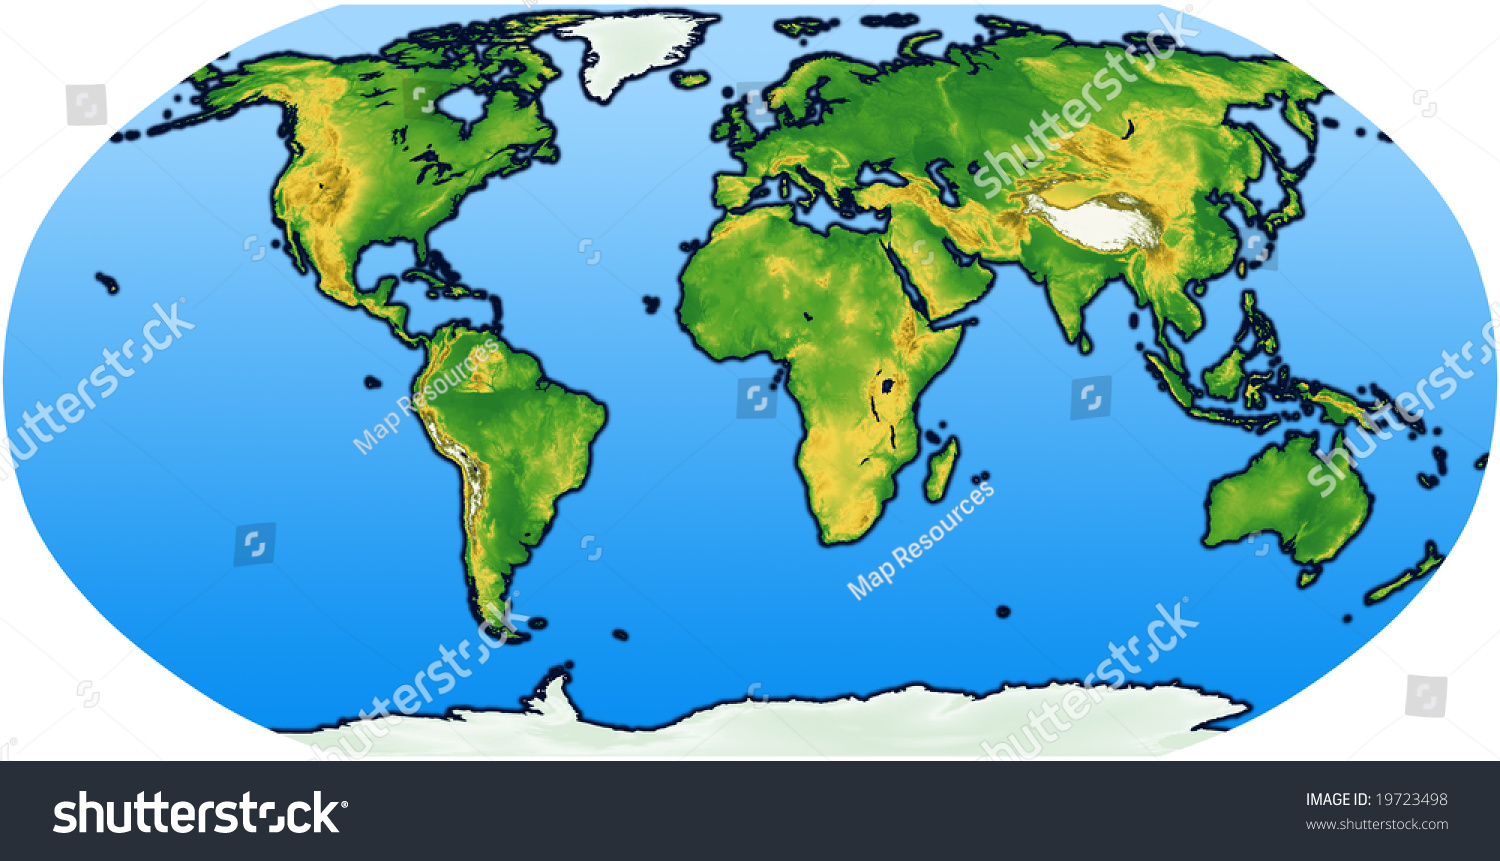 Terrain World Map.Robinson World Map Terrain Stock Illustration Royalty Free Stock